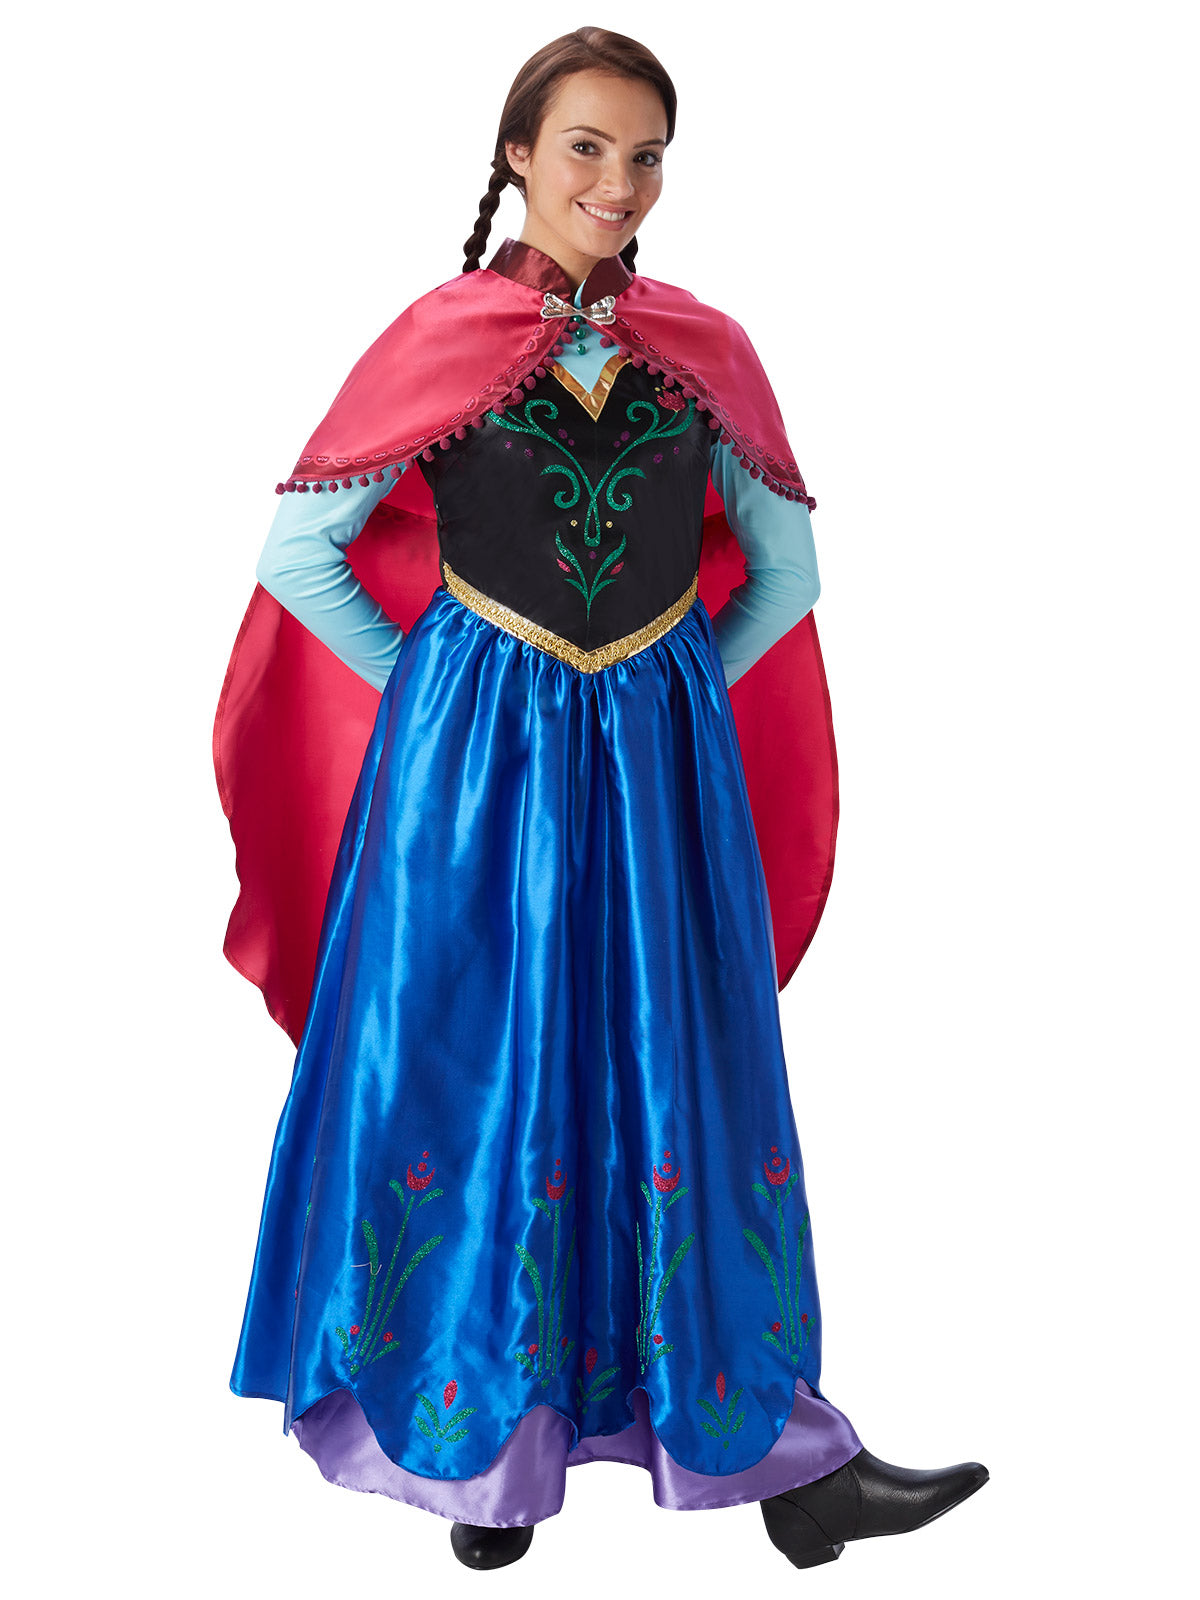 Anna Deluxe Frozen Costume - Buy Online Only